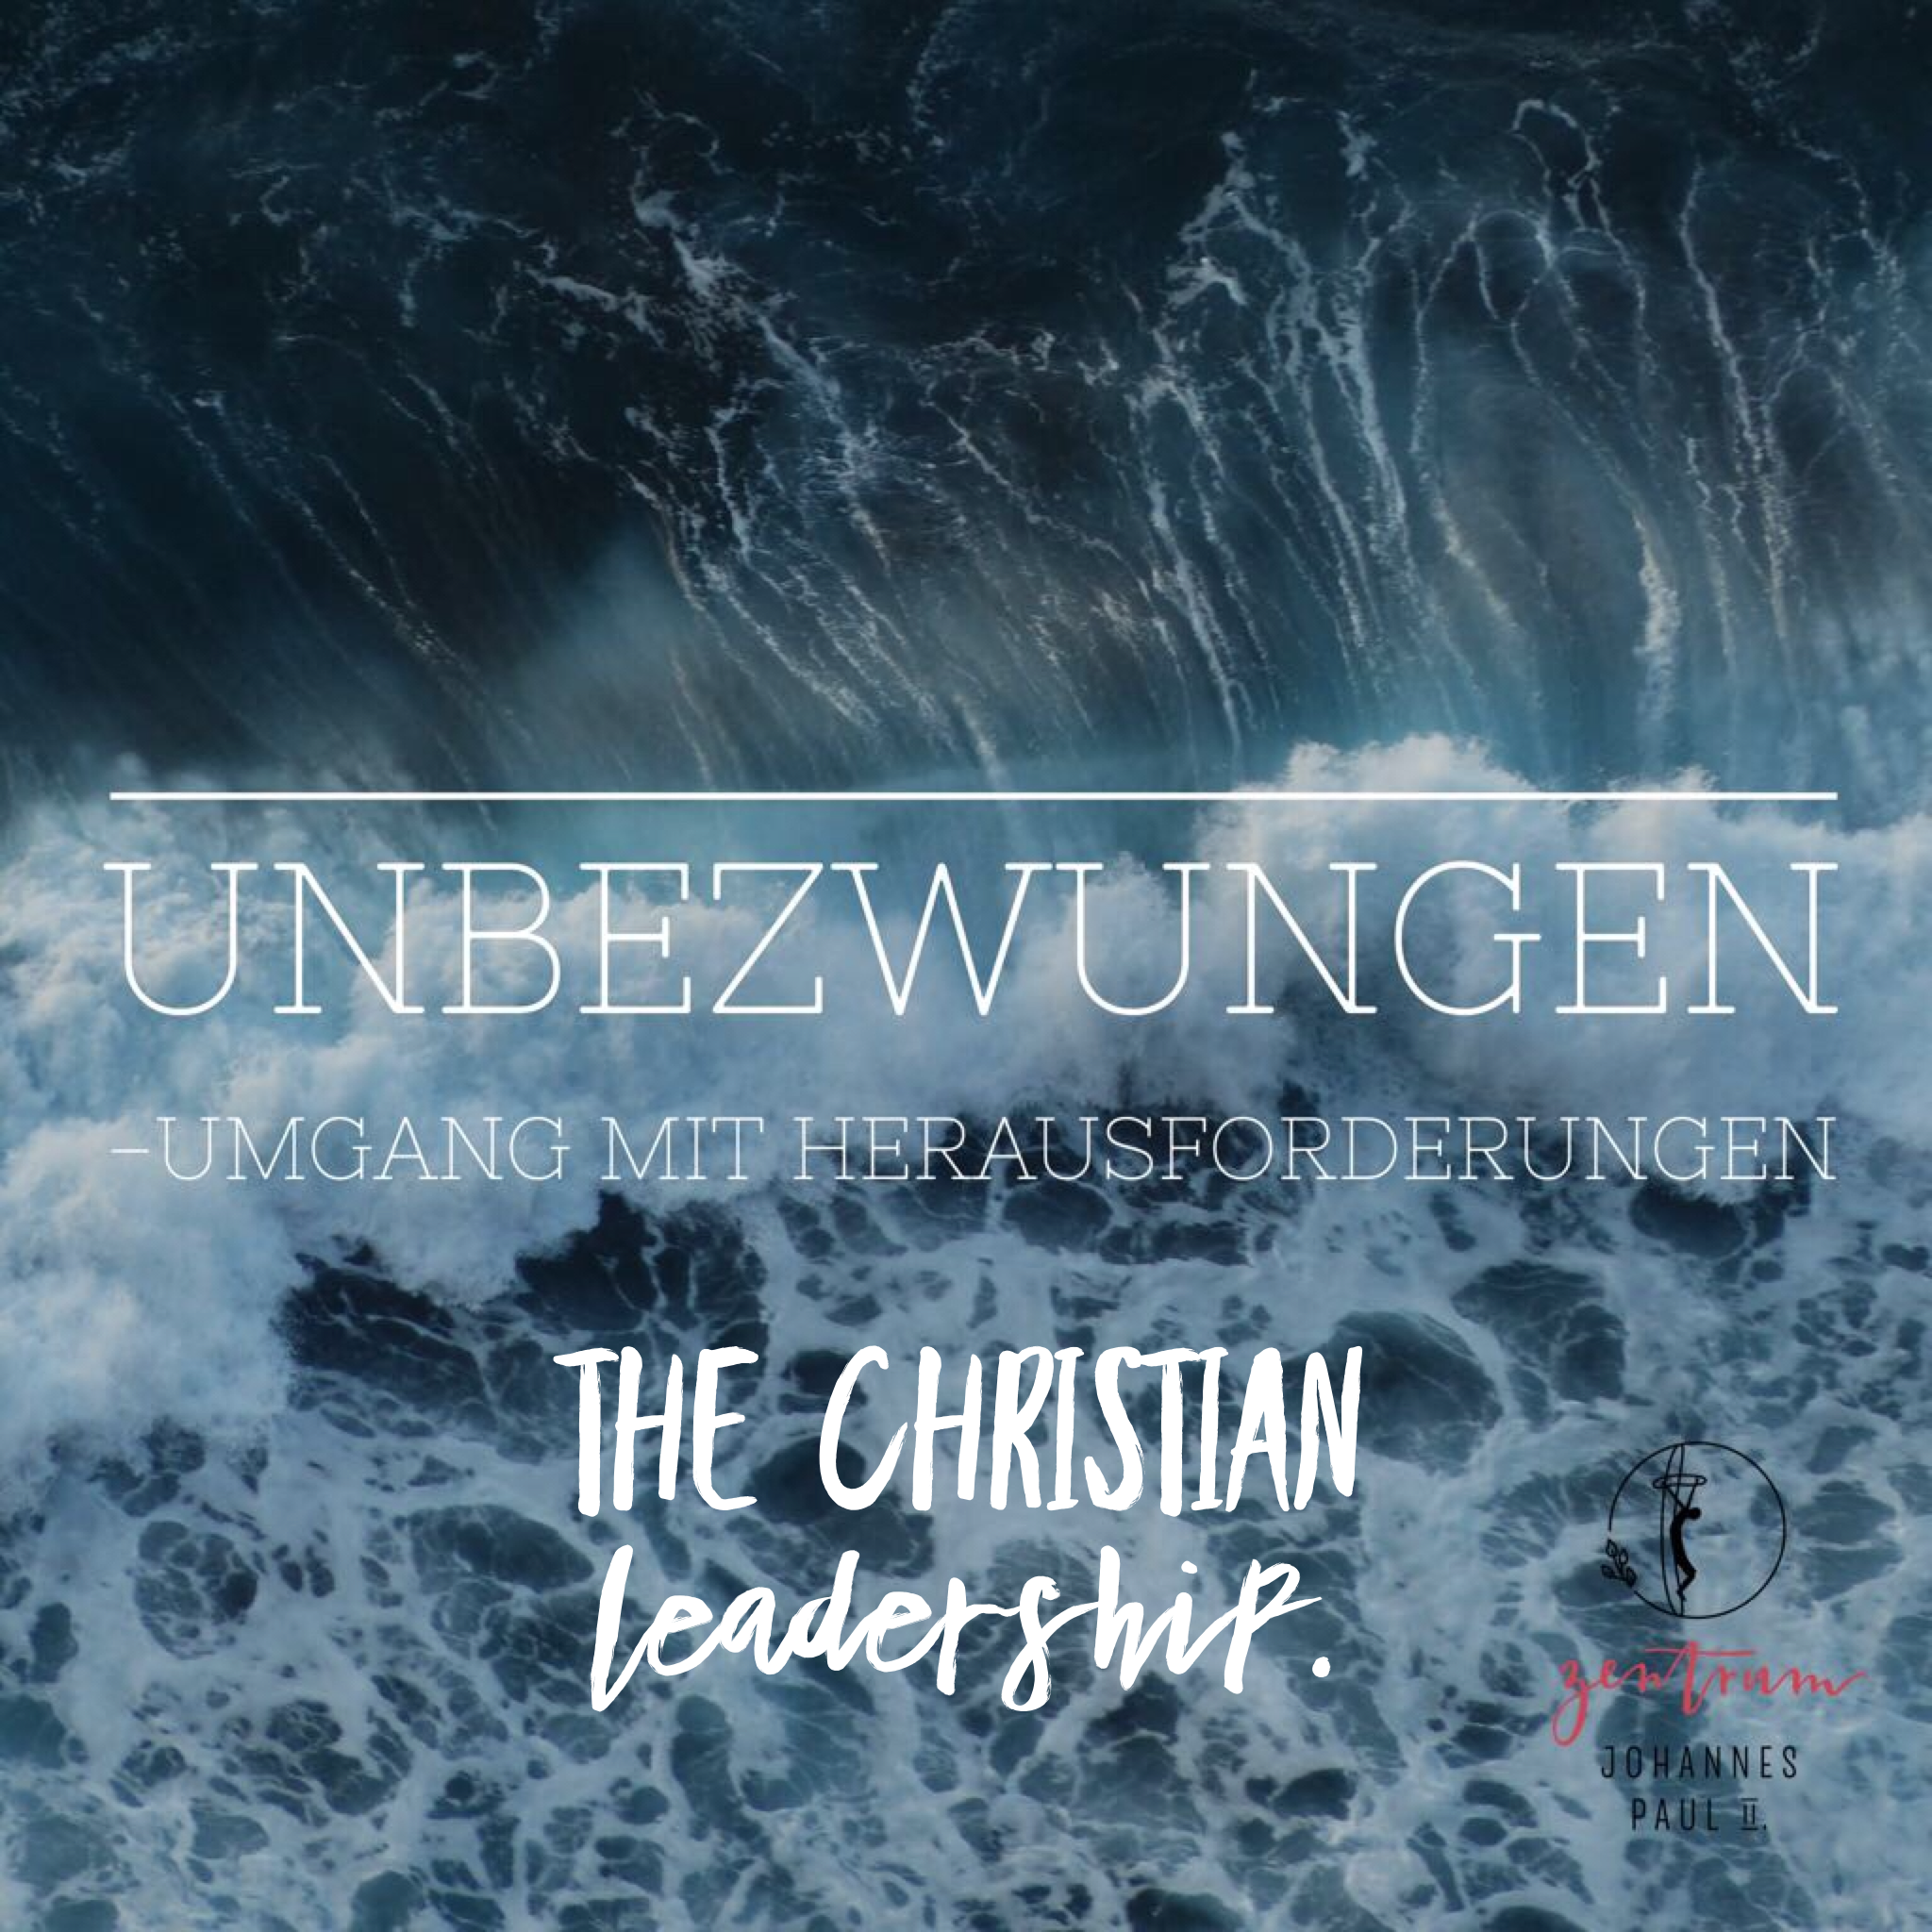 Unbezwungen - (6) The Challenge of Christian Leadership